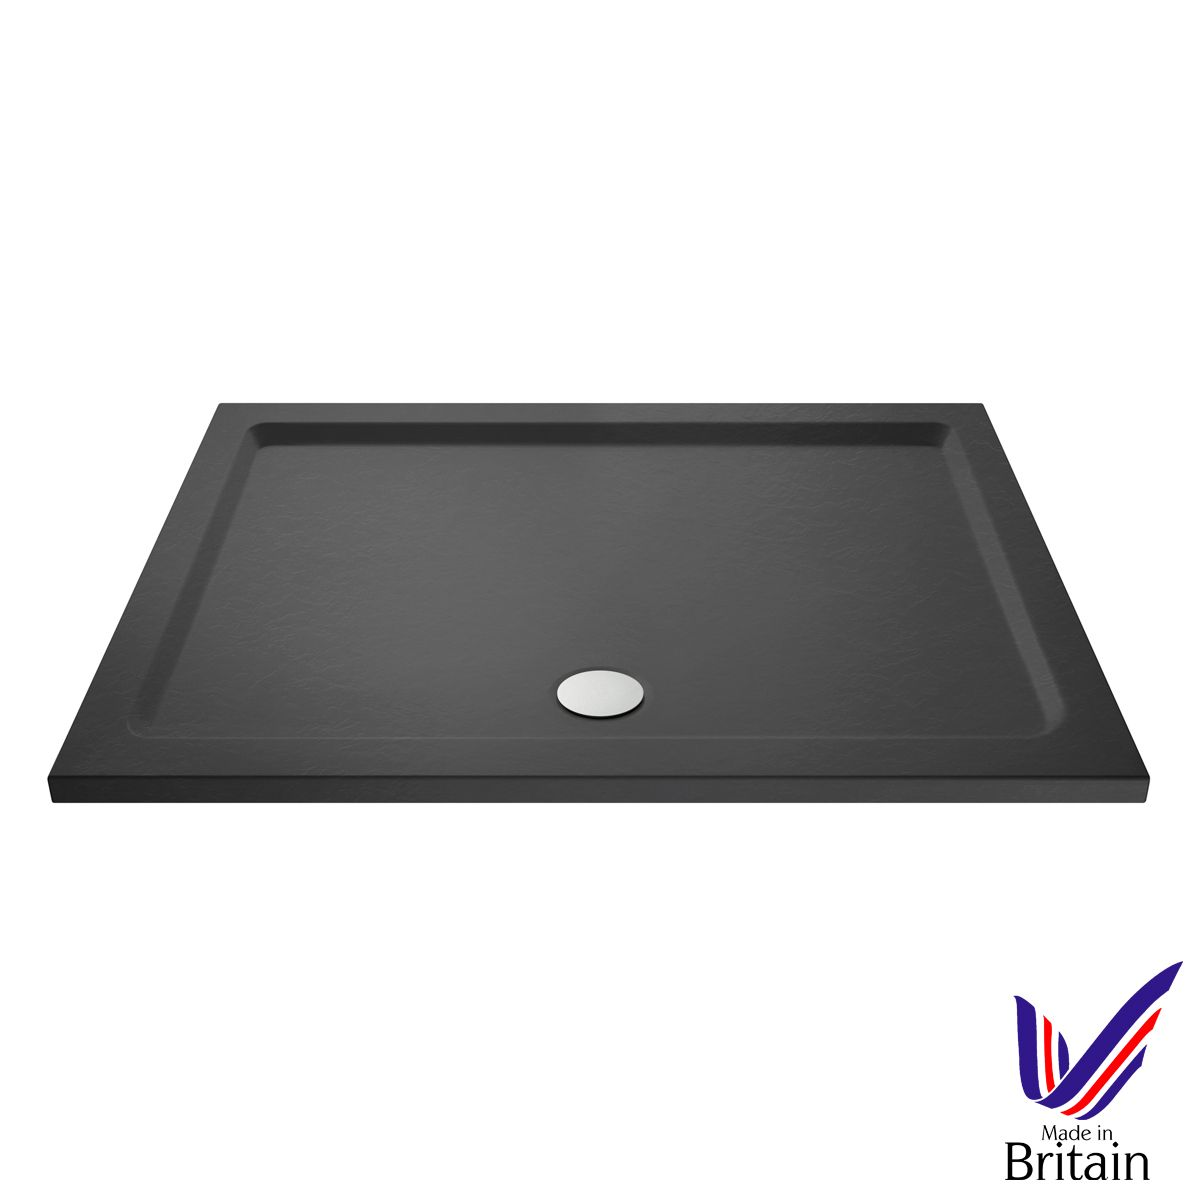 1700 x 800 Shower Tray Slate Grey Rectangular Low Profile by Pearlstone